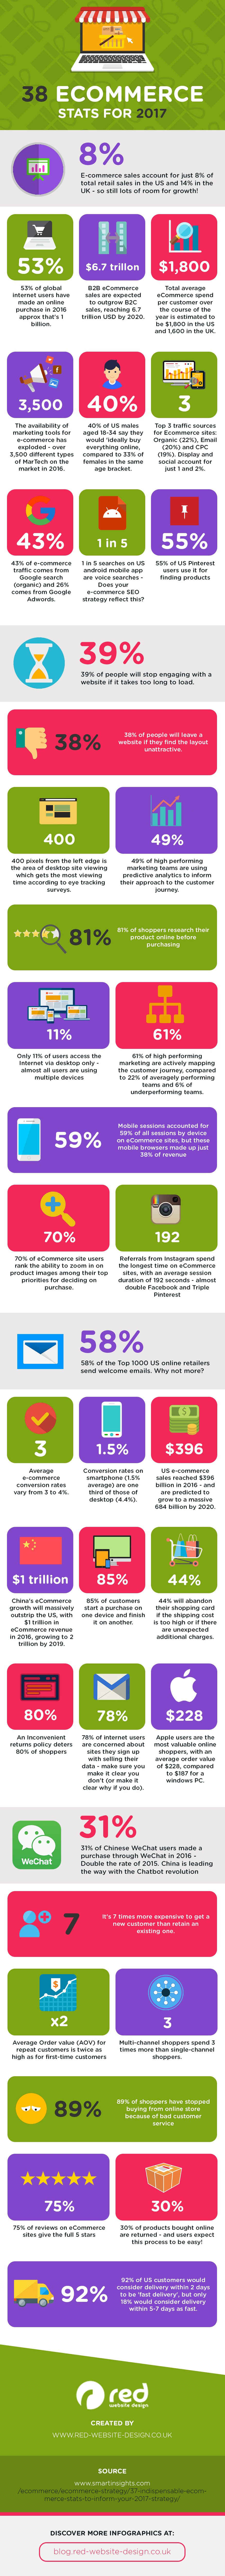 Own an Online Shop? 38 Stats That Should Guide Your 2017 Strategy [Infographic]